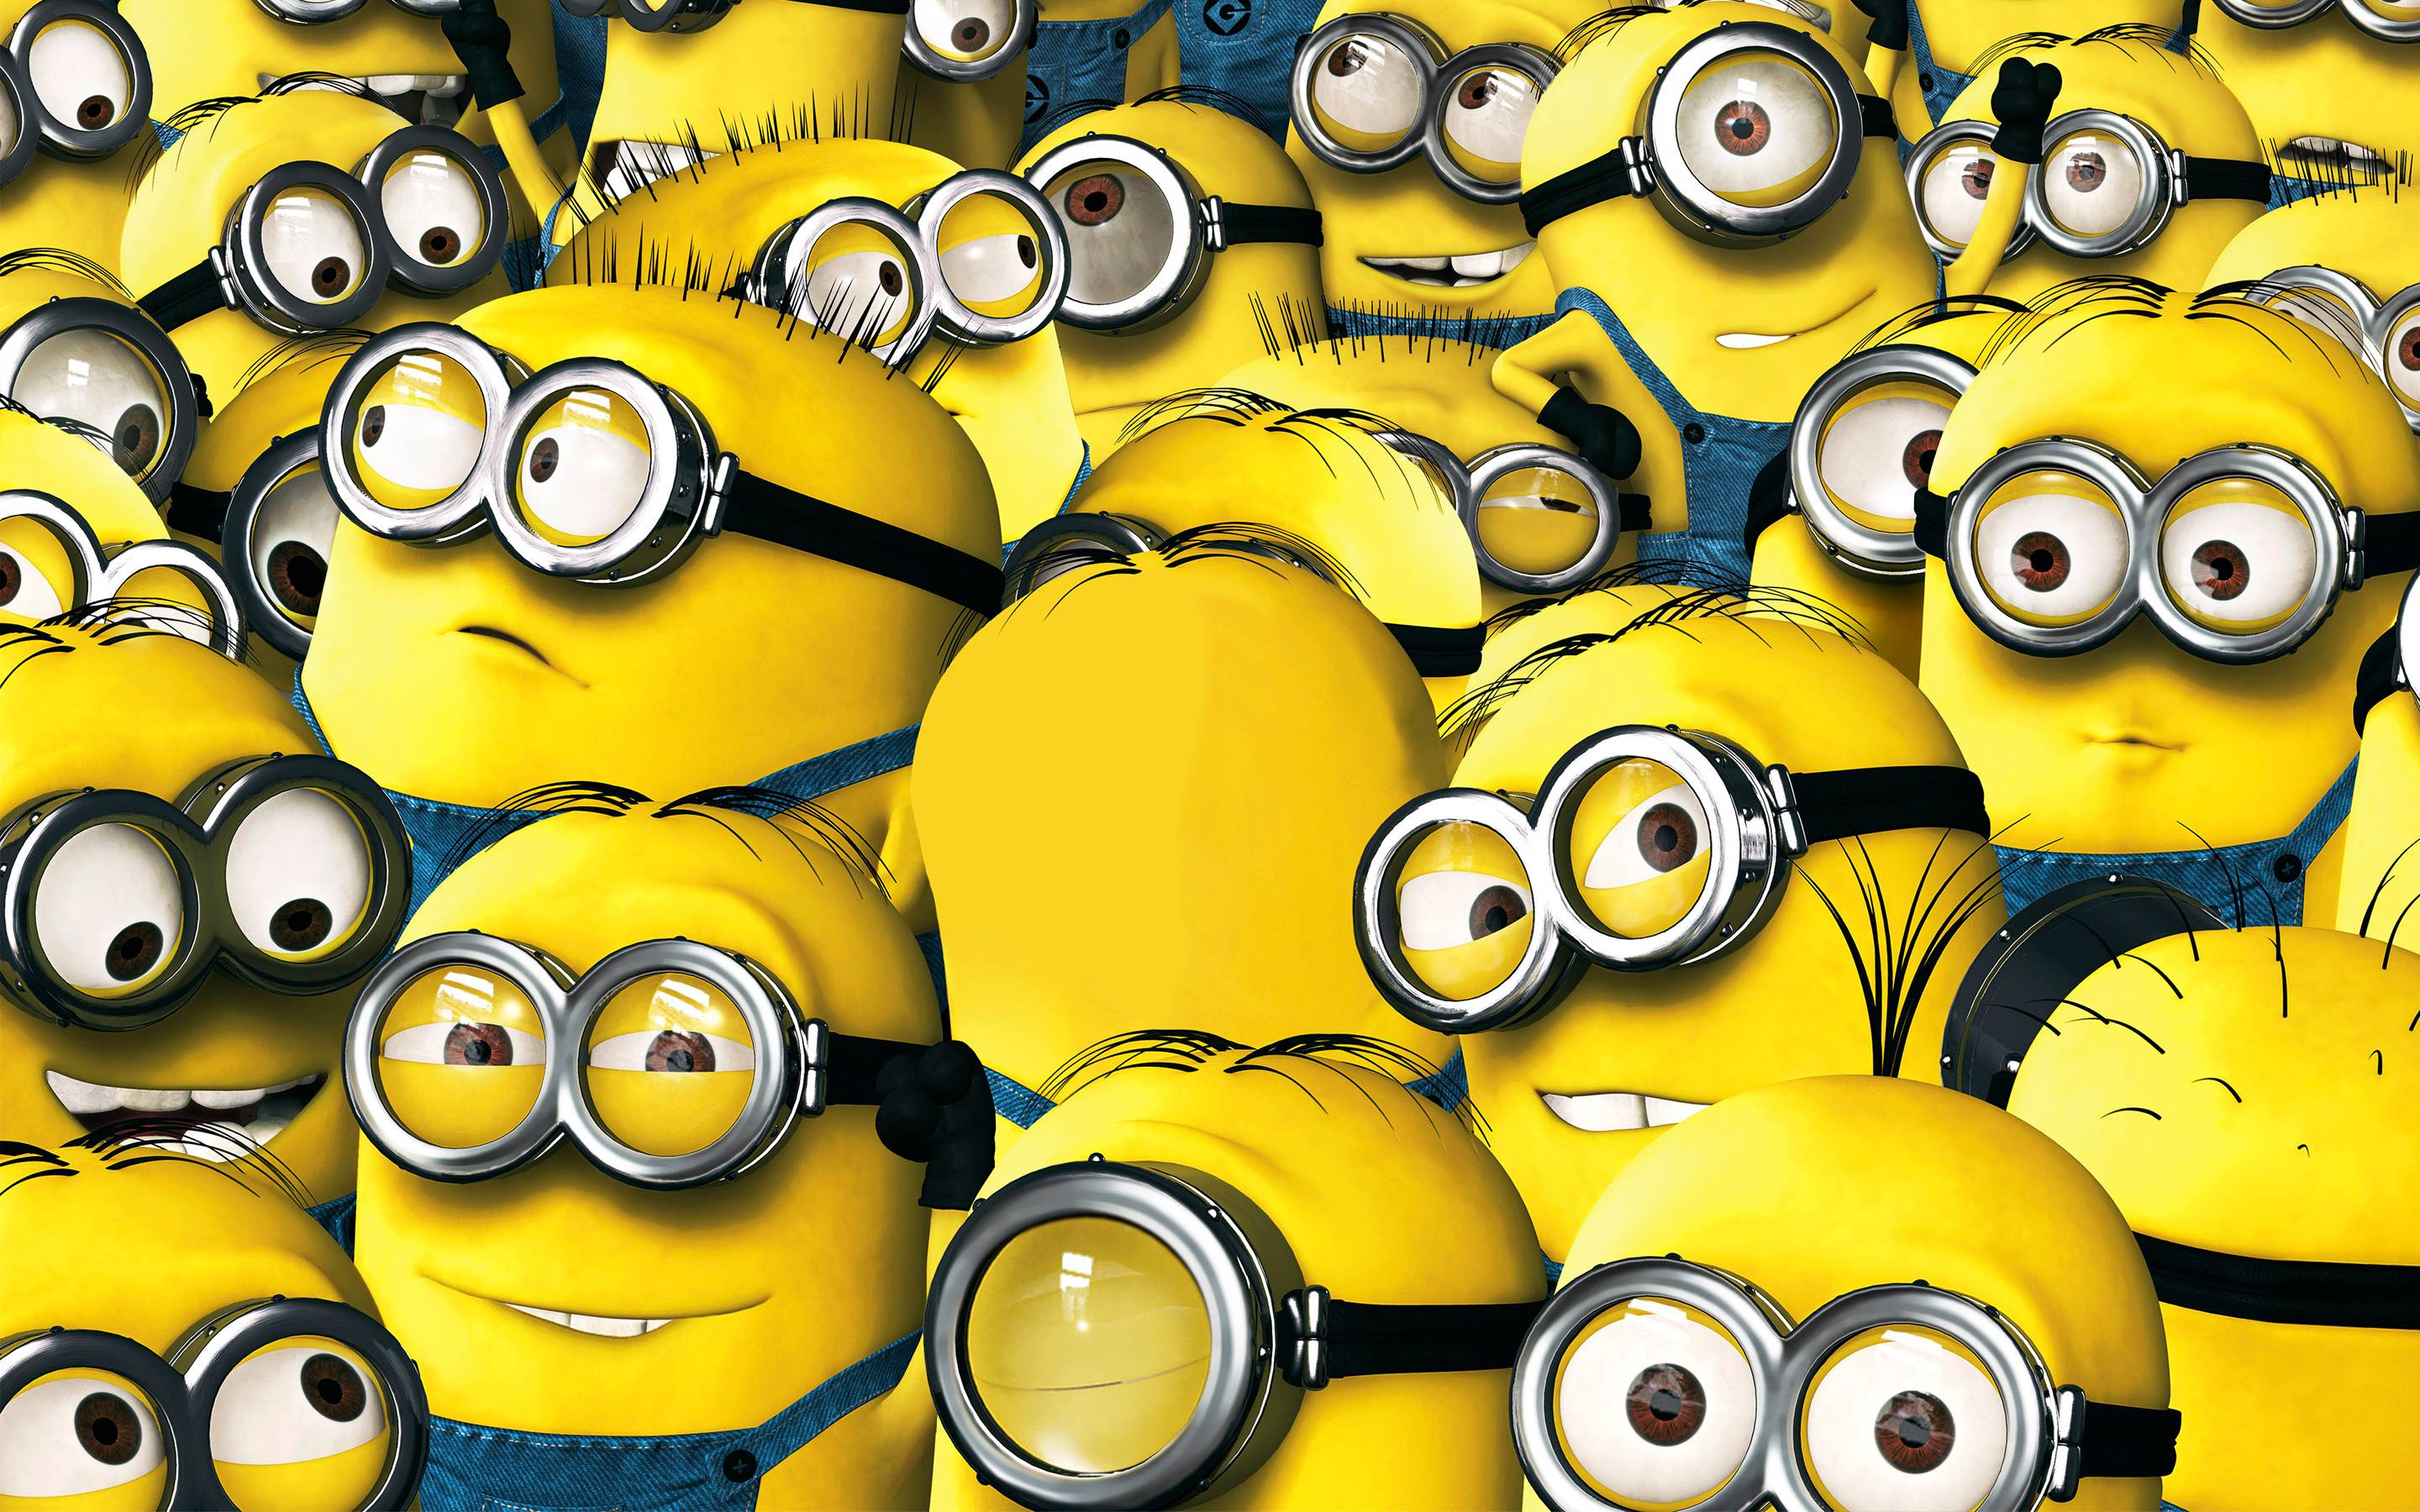 Despicable Me Minions Wallpapers